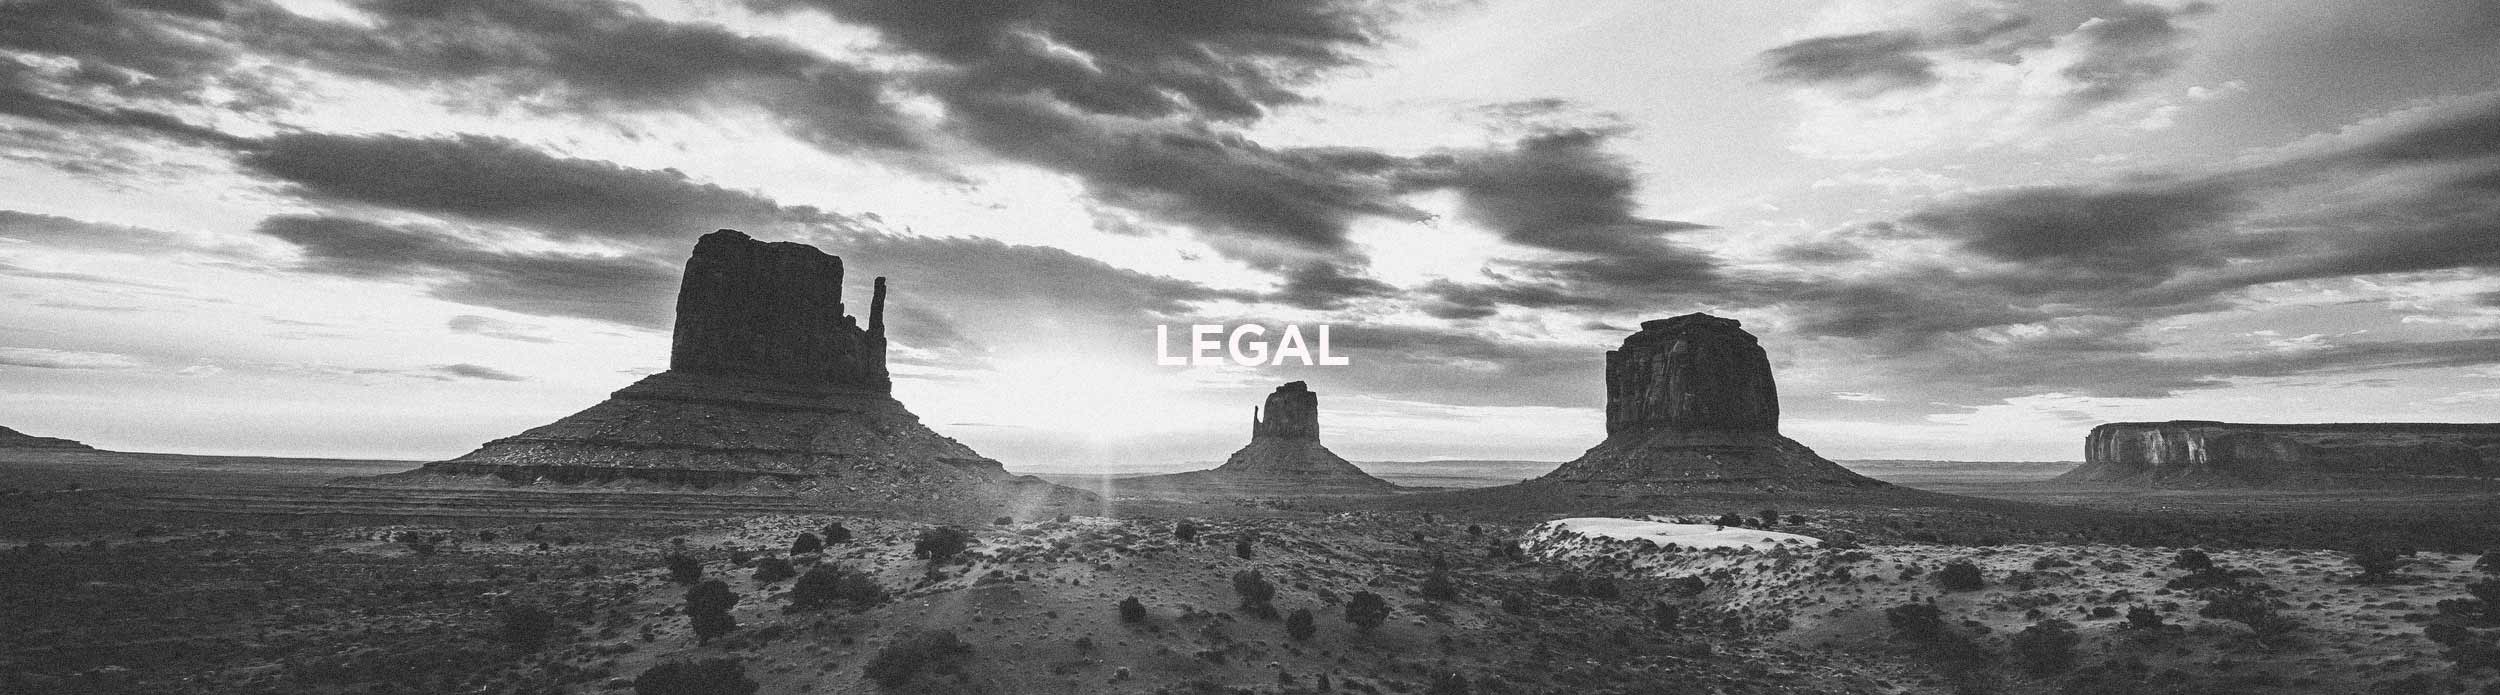 header of bratleboro legal